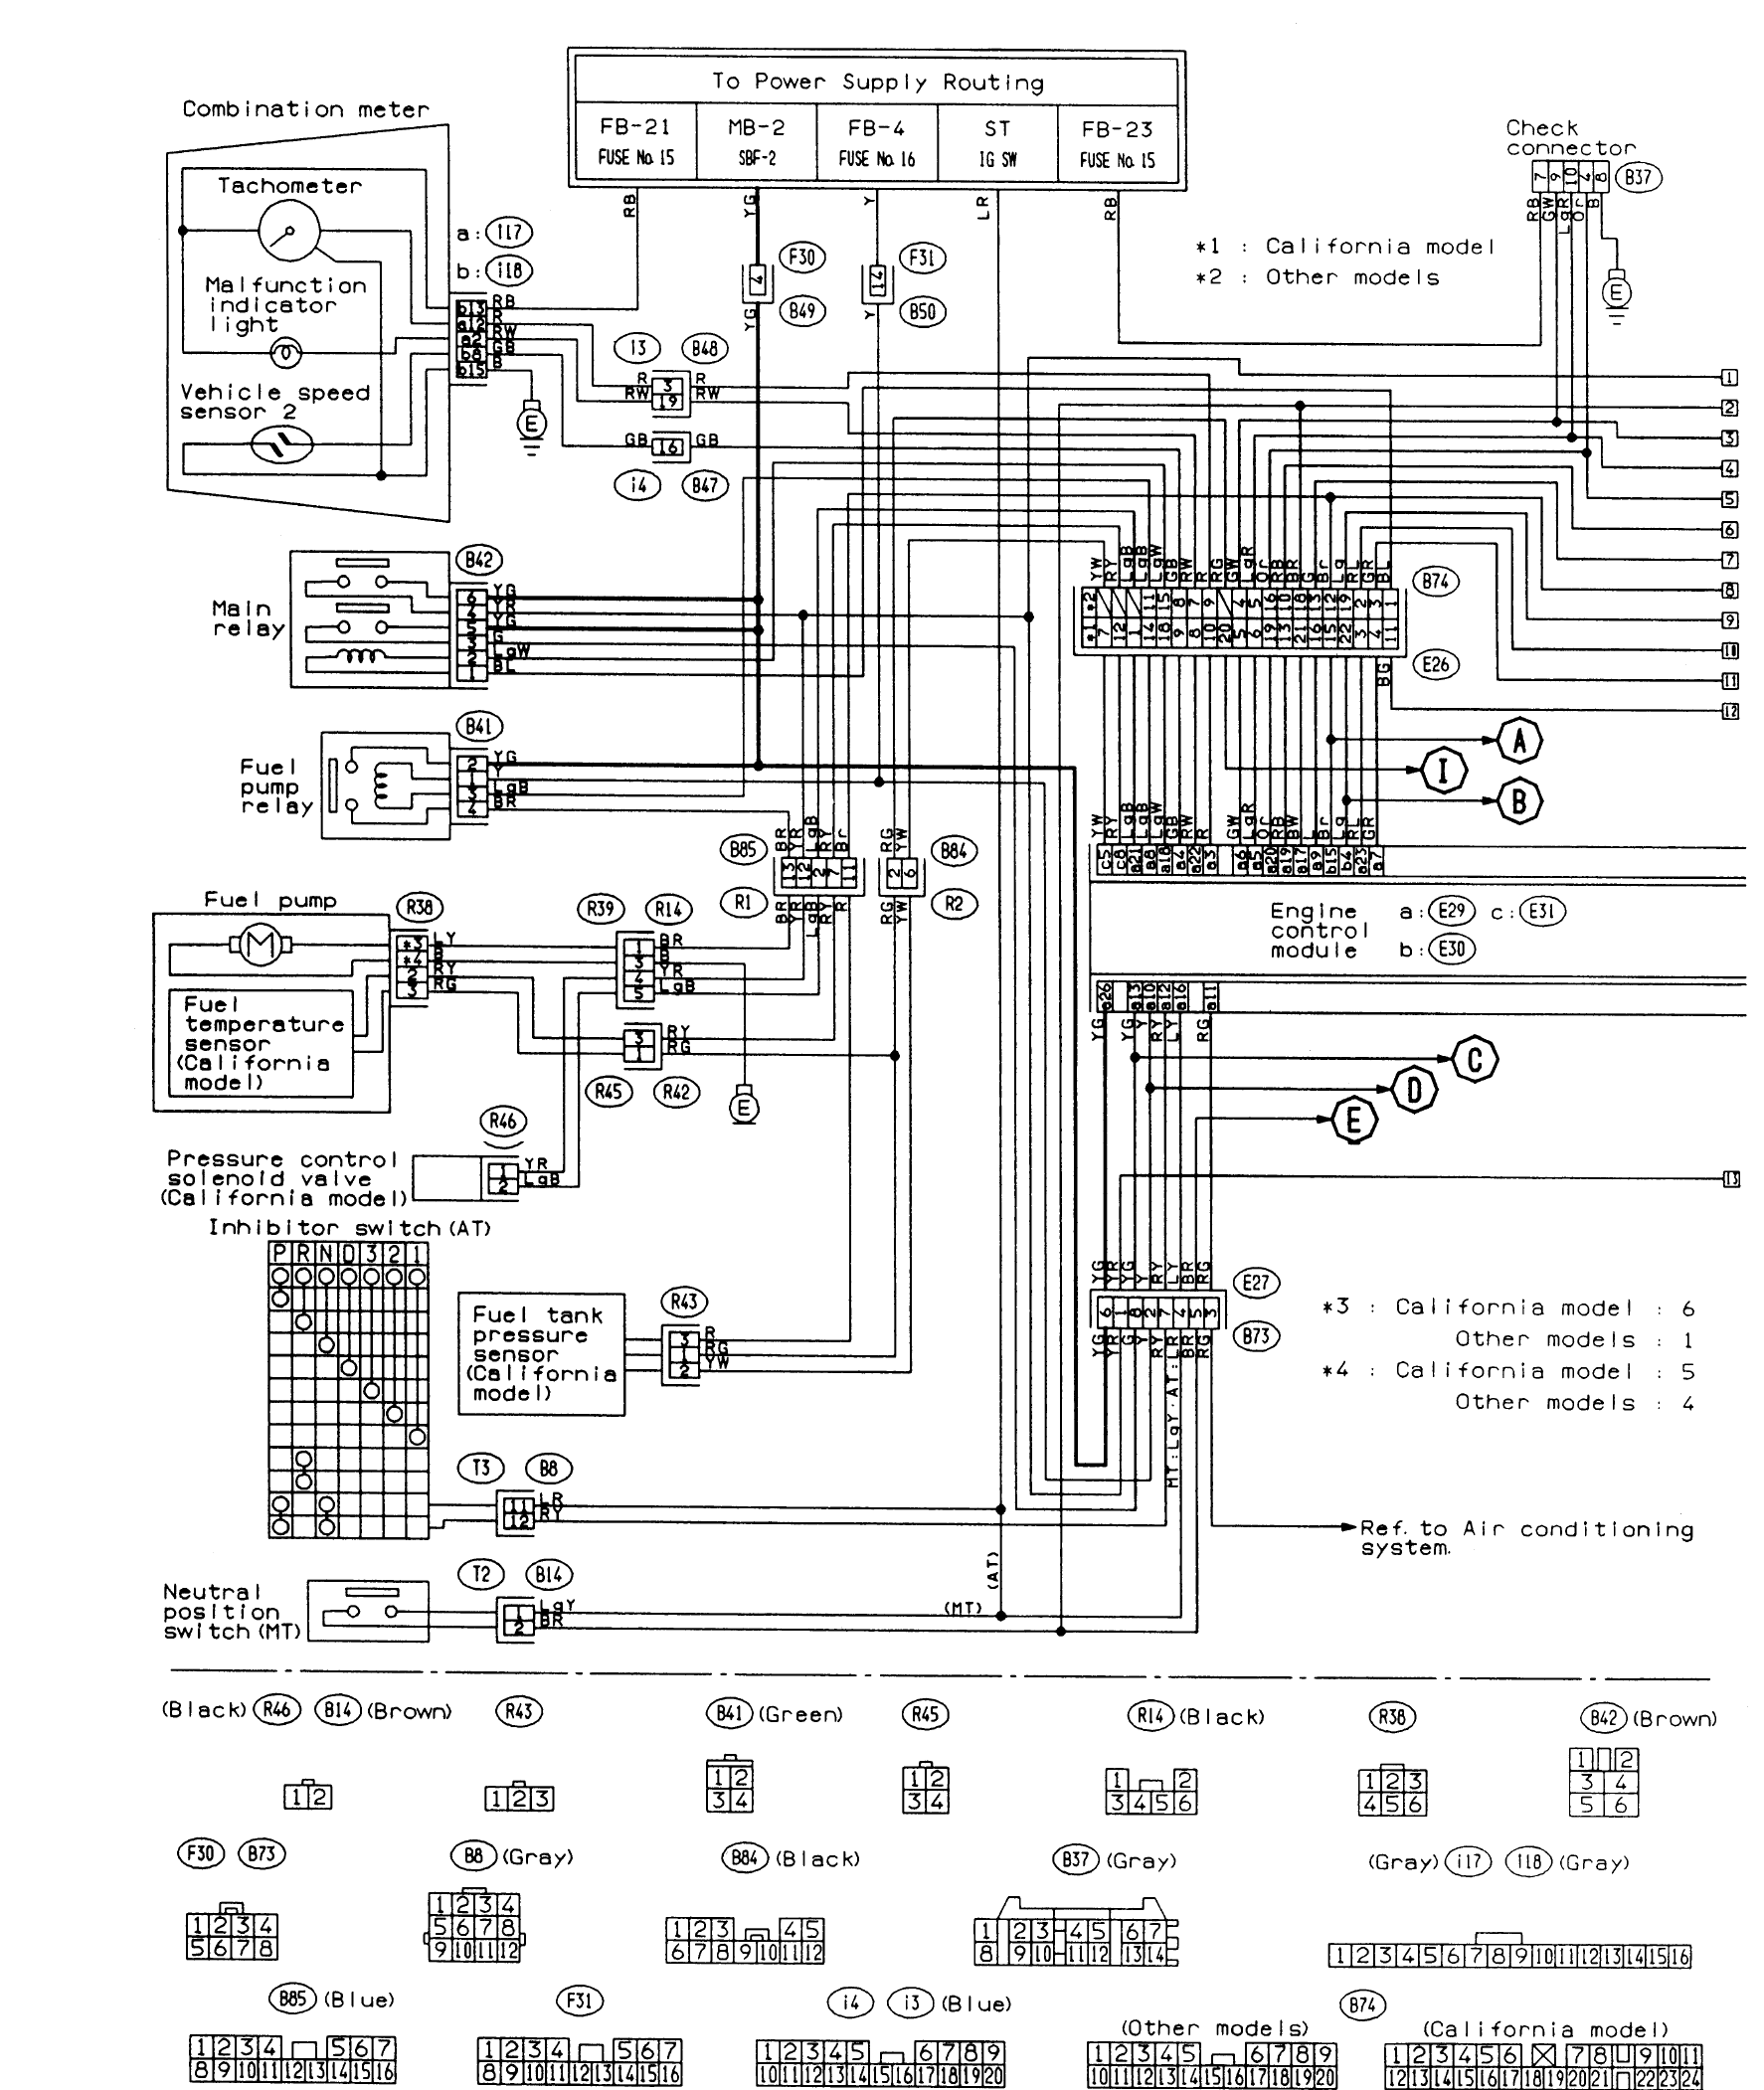 Subaru Ecu Wiring Diagram As Well 2002 Wrx Transmission Wire Harness